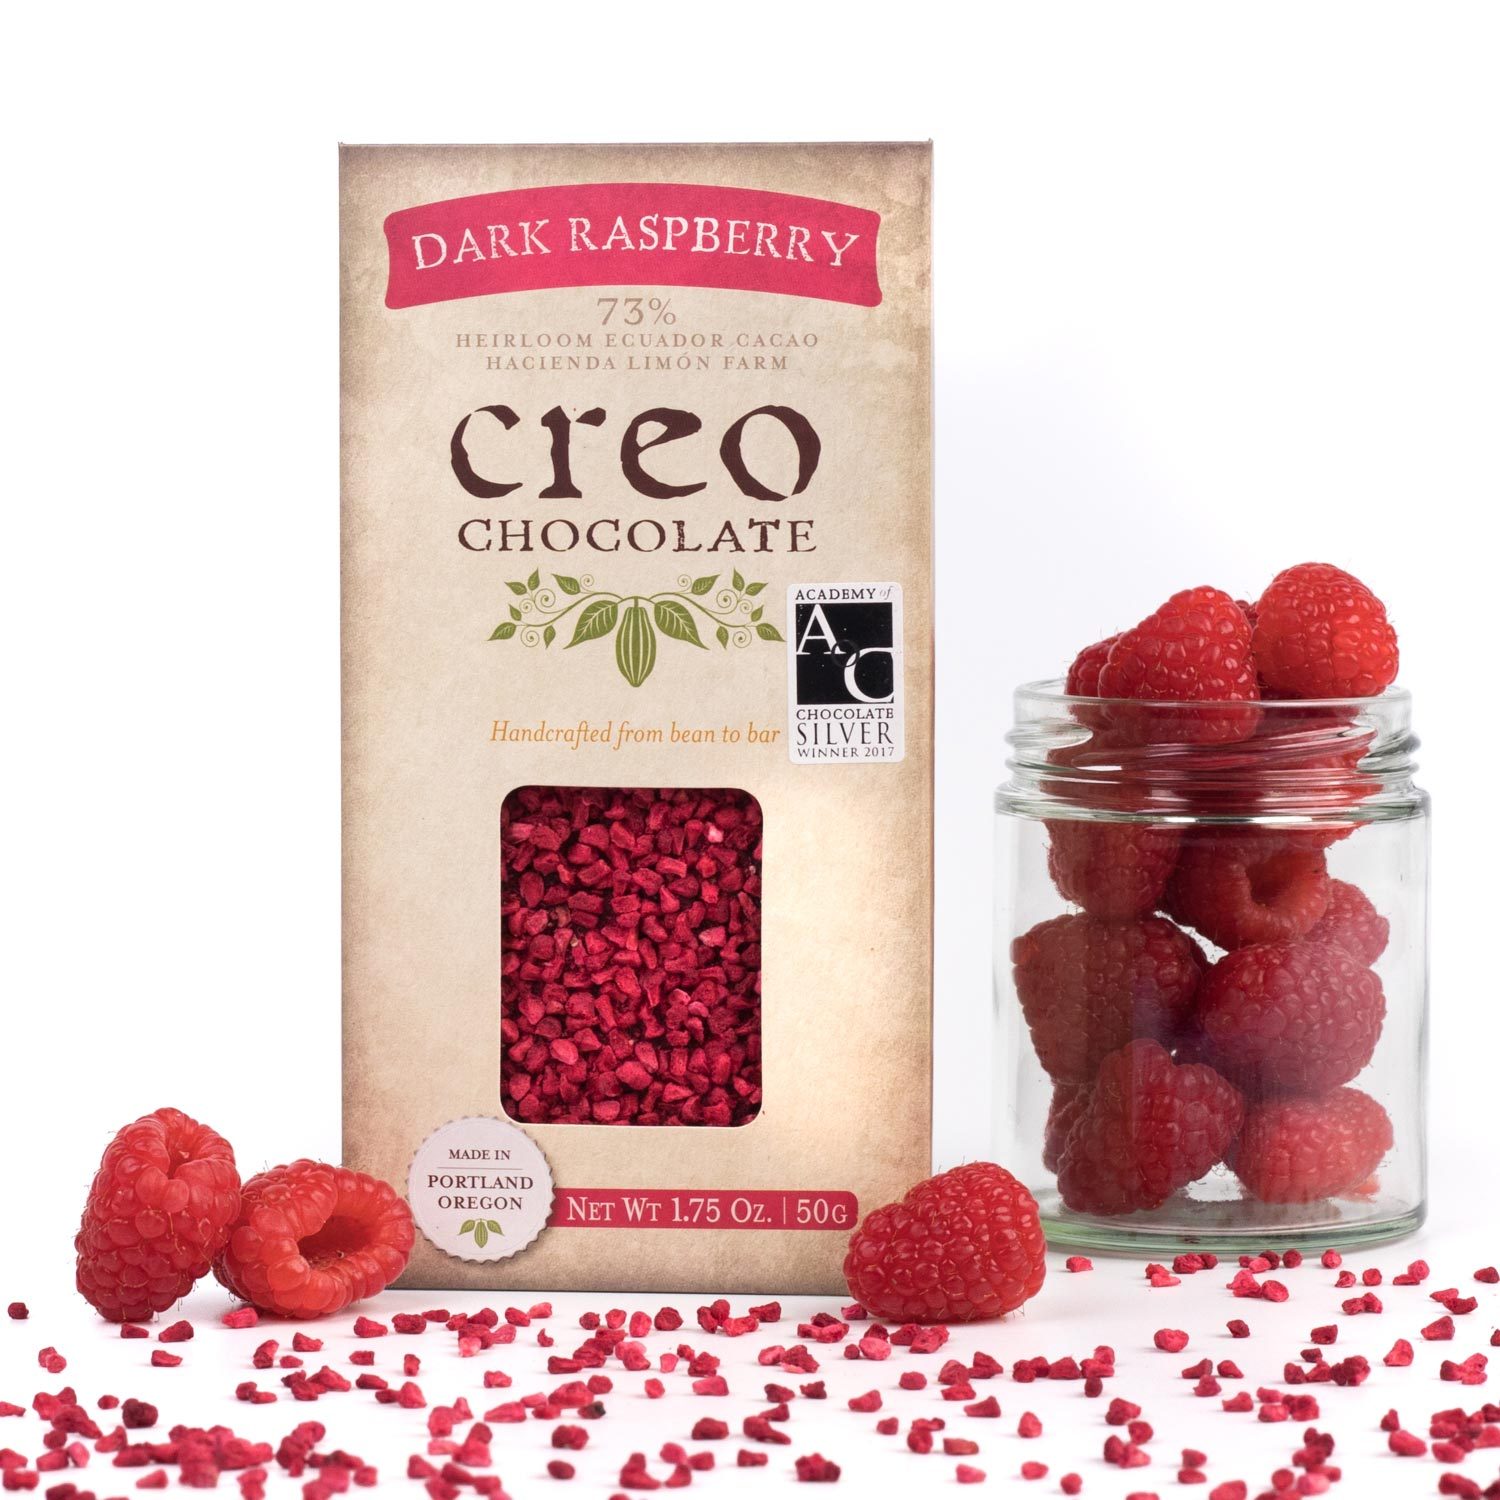 Dark Raspberry Bar - Creo Chocolate